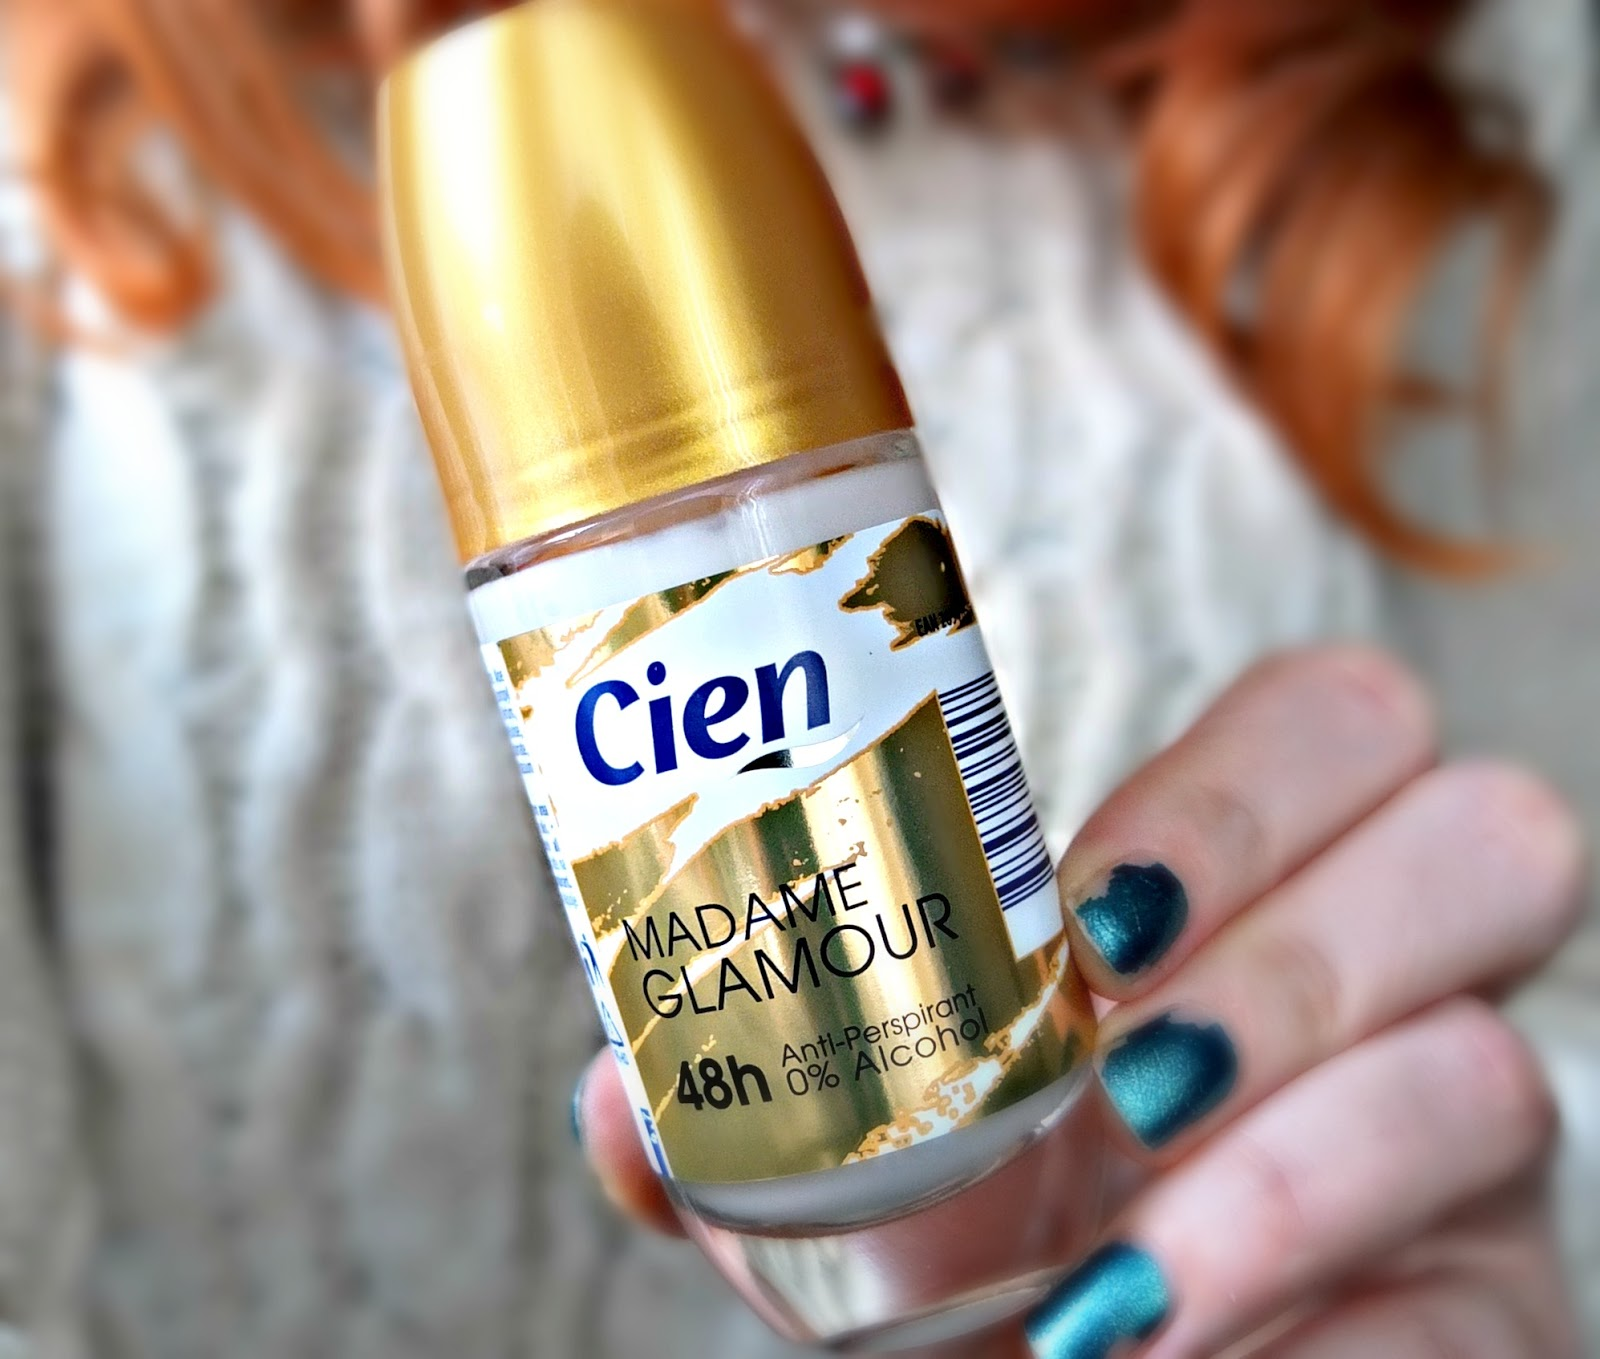 Cien Madame Glamour Deodorant from Lidl.